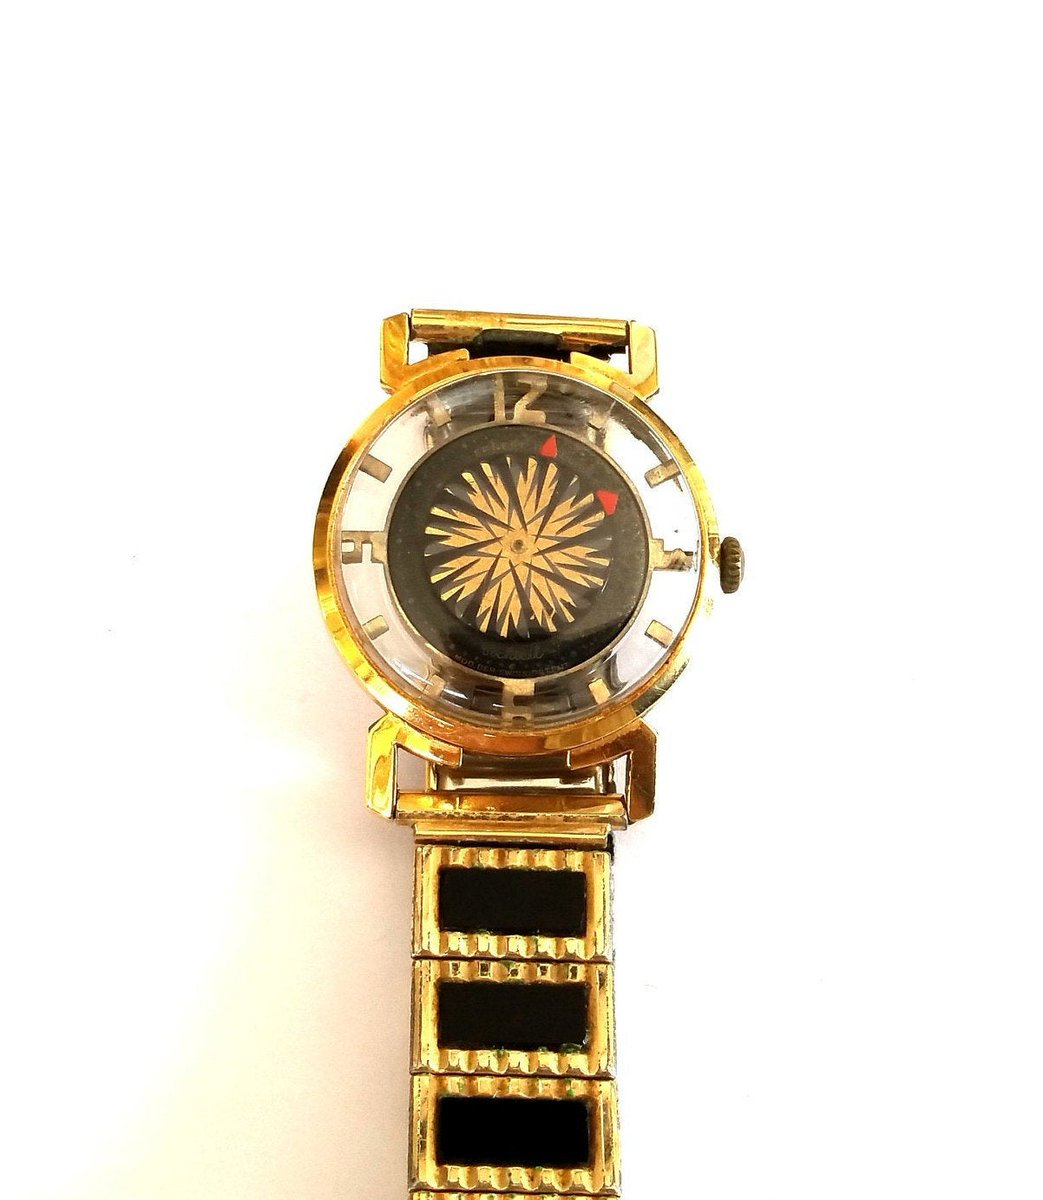 #Geek 🤓 Awesome of the Day: #Steampunk-ish ⚙️ Ernest Borel #Kaleidoscope Cocktail #Watch⌚ 1960s via @TrendiTreasures on @Etsy #SamaWatch #SamaGeek